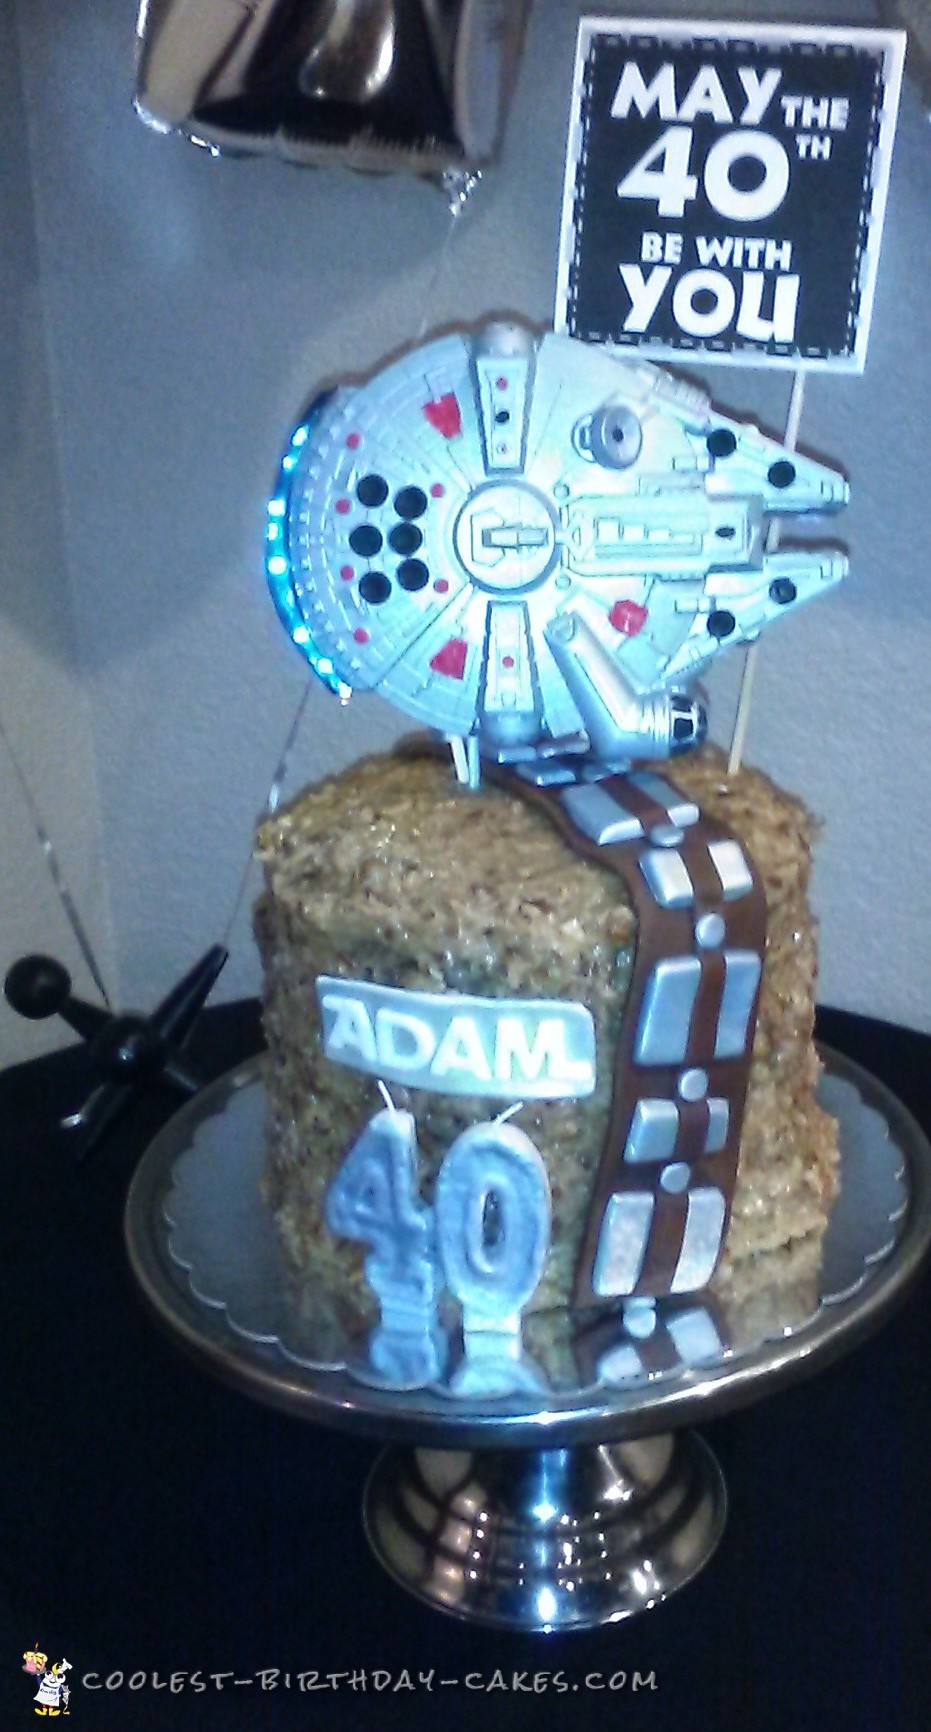 Coolest Homemade Star Wars Cake for my Husband's 40th Birthday